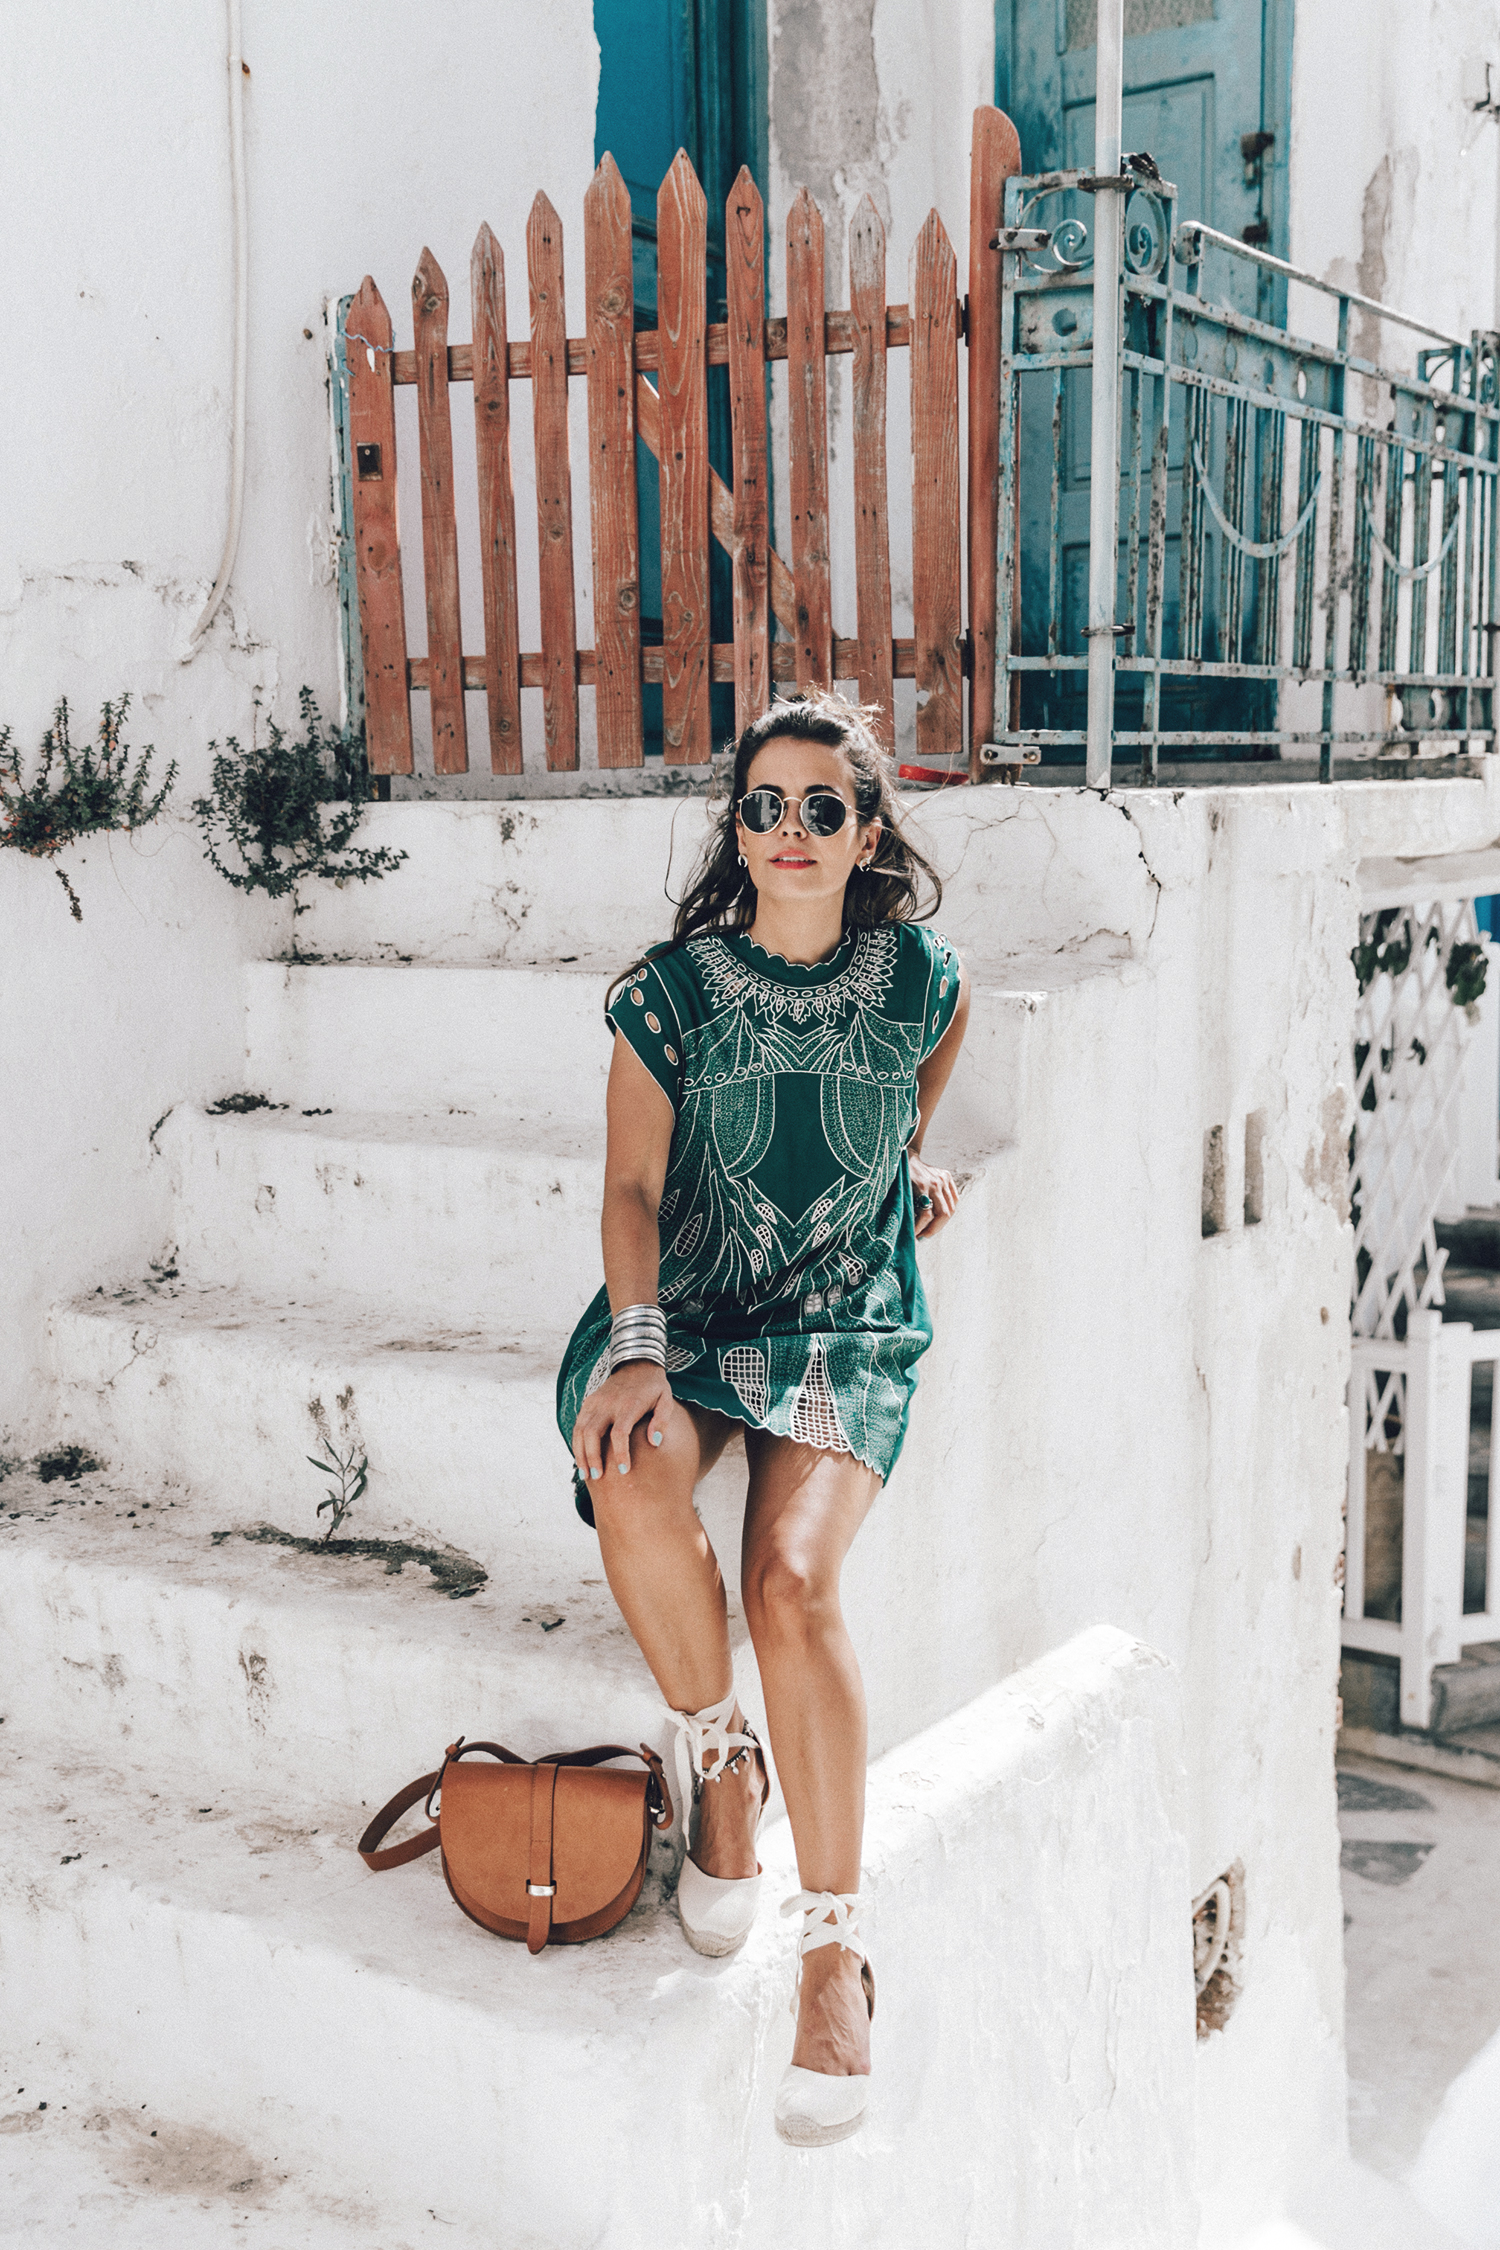 Tularosa_Dress-Soludos_Escapes-Soludos_Espadrilles-Sezane_Bag-Leather_Crossbody_Bag-Boho_Outfit-Look-Ray_Ban-Street_Style-Mykonos-Greece-Collage_Vintage-22